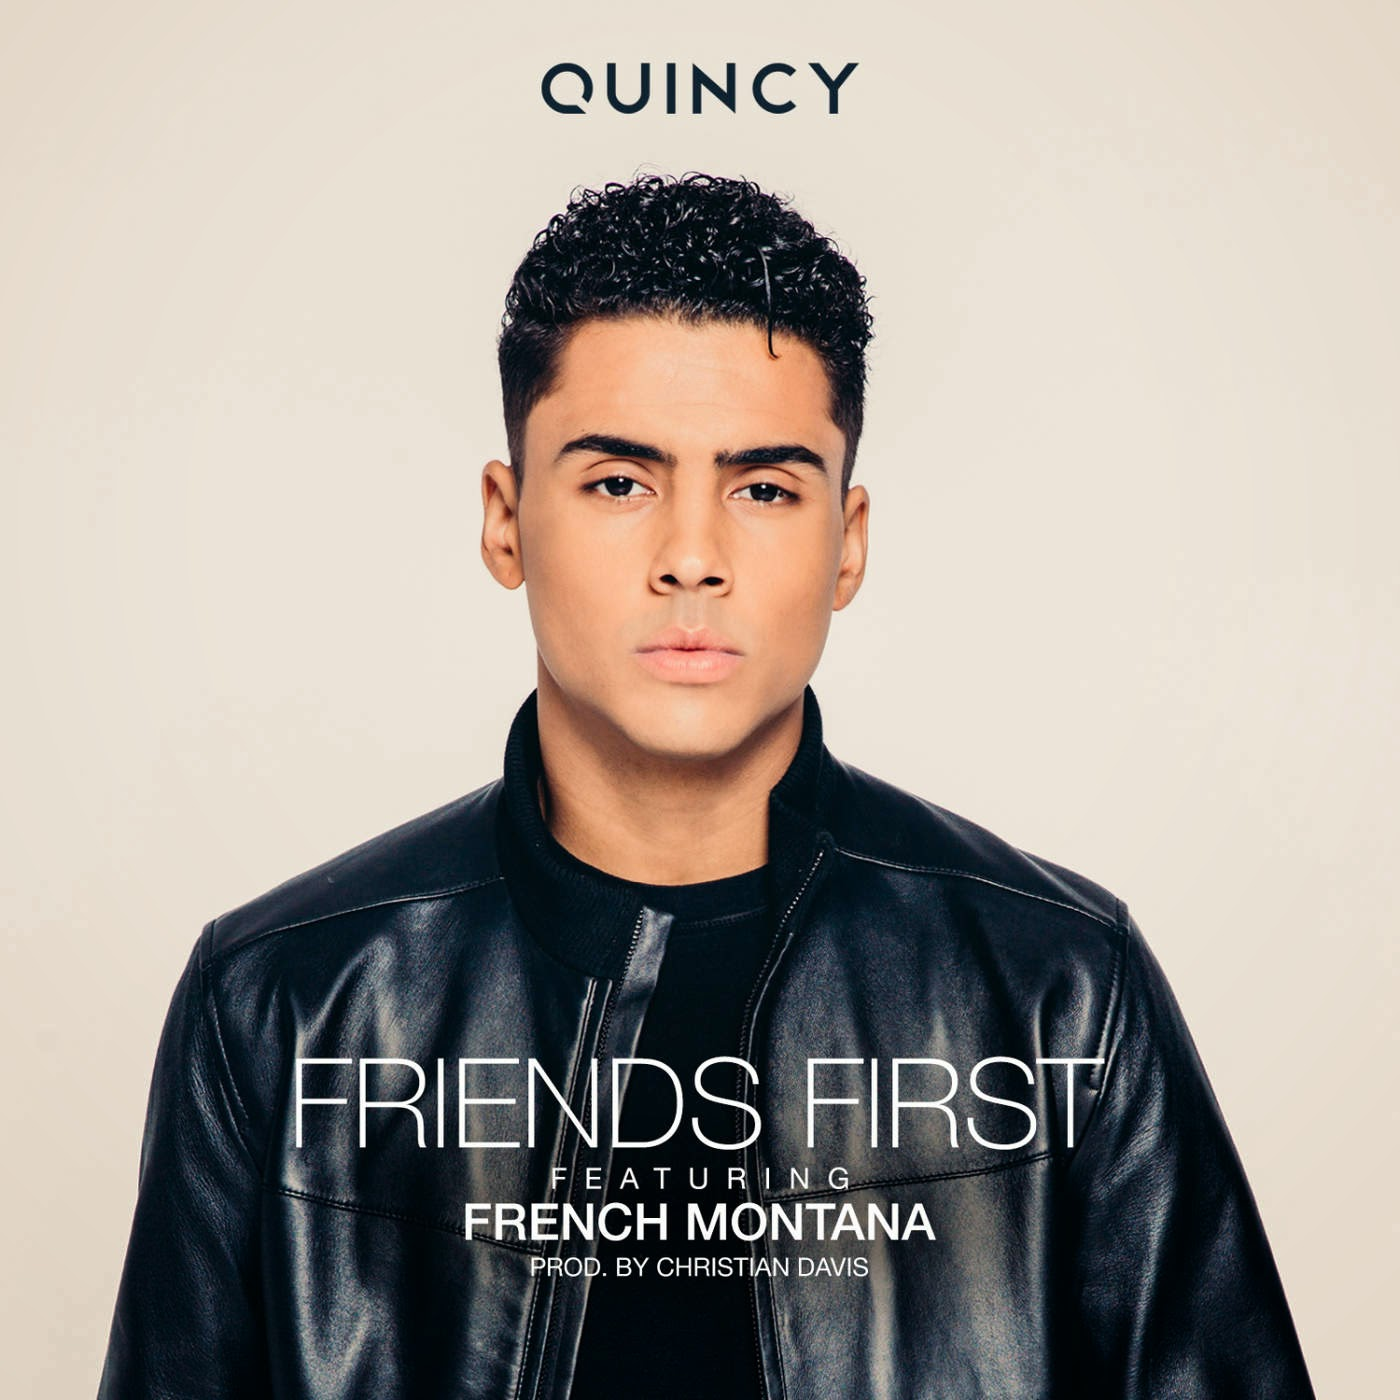 Quincy - Friends First (feat. French Montana) - Single Cover